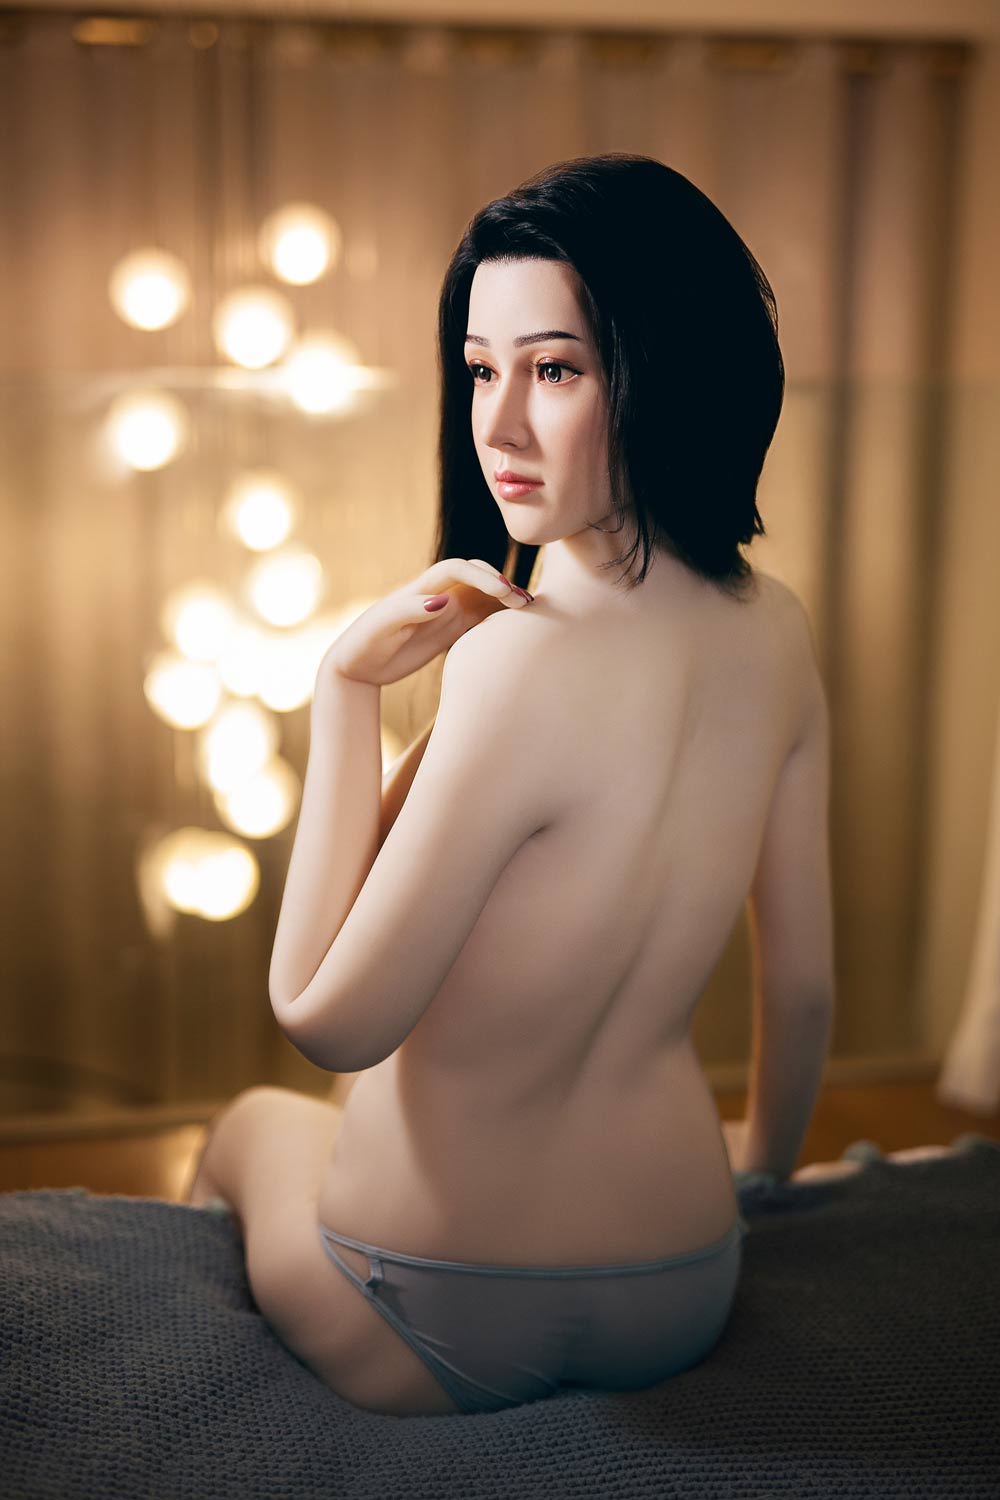 Silicone sex doll with hand touching shoulder